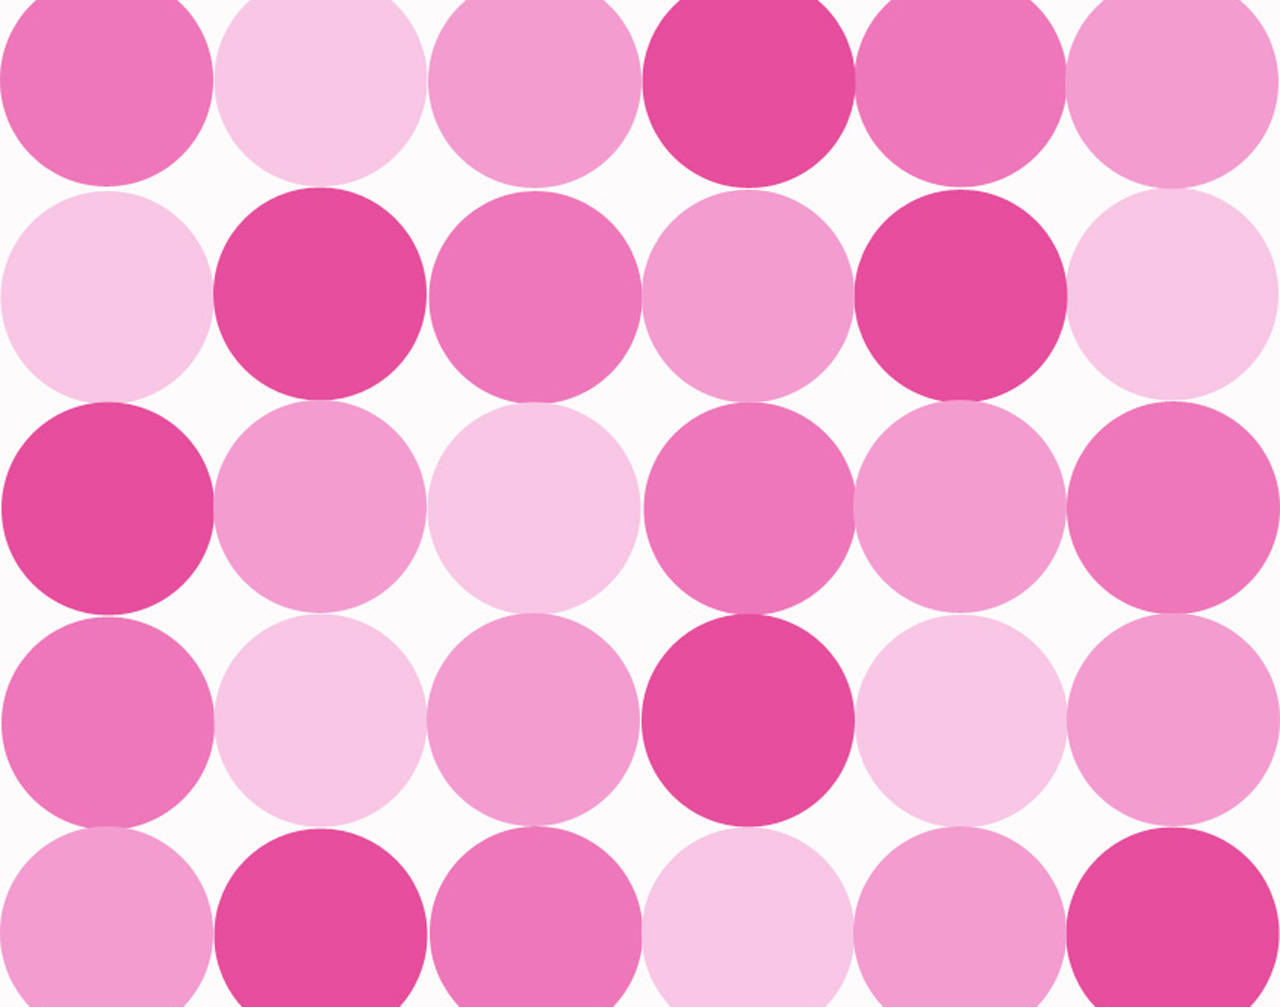 polka dots wallpaper - photo #28